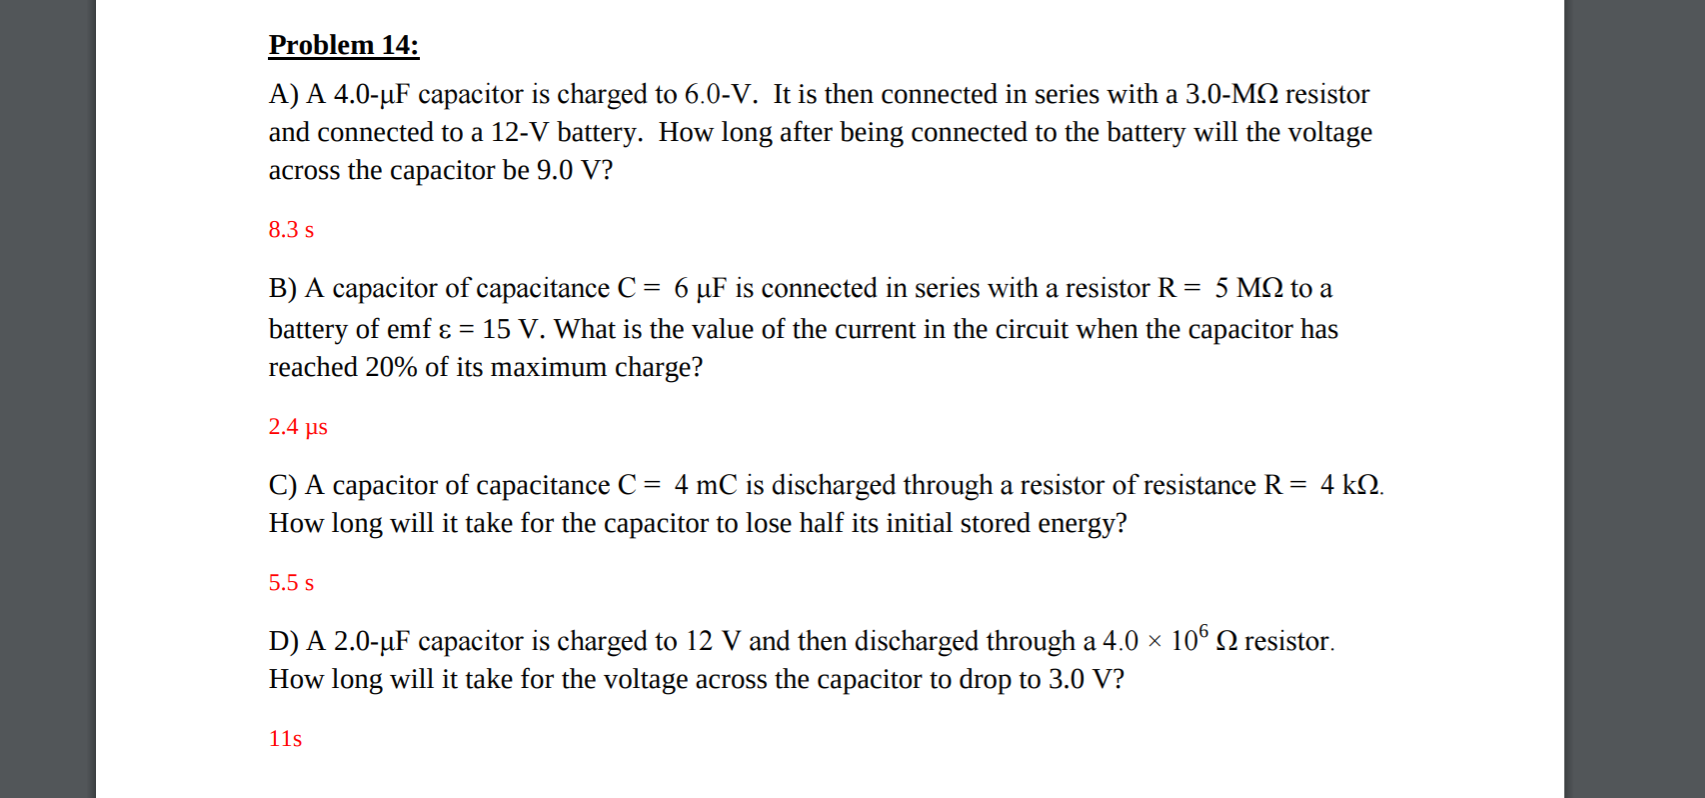 Problem 14: A) A 4.0-HF capacitor is charged to 6.